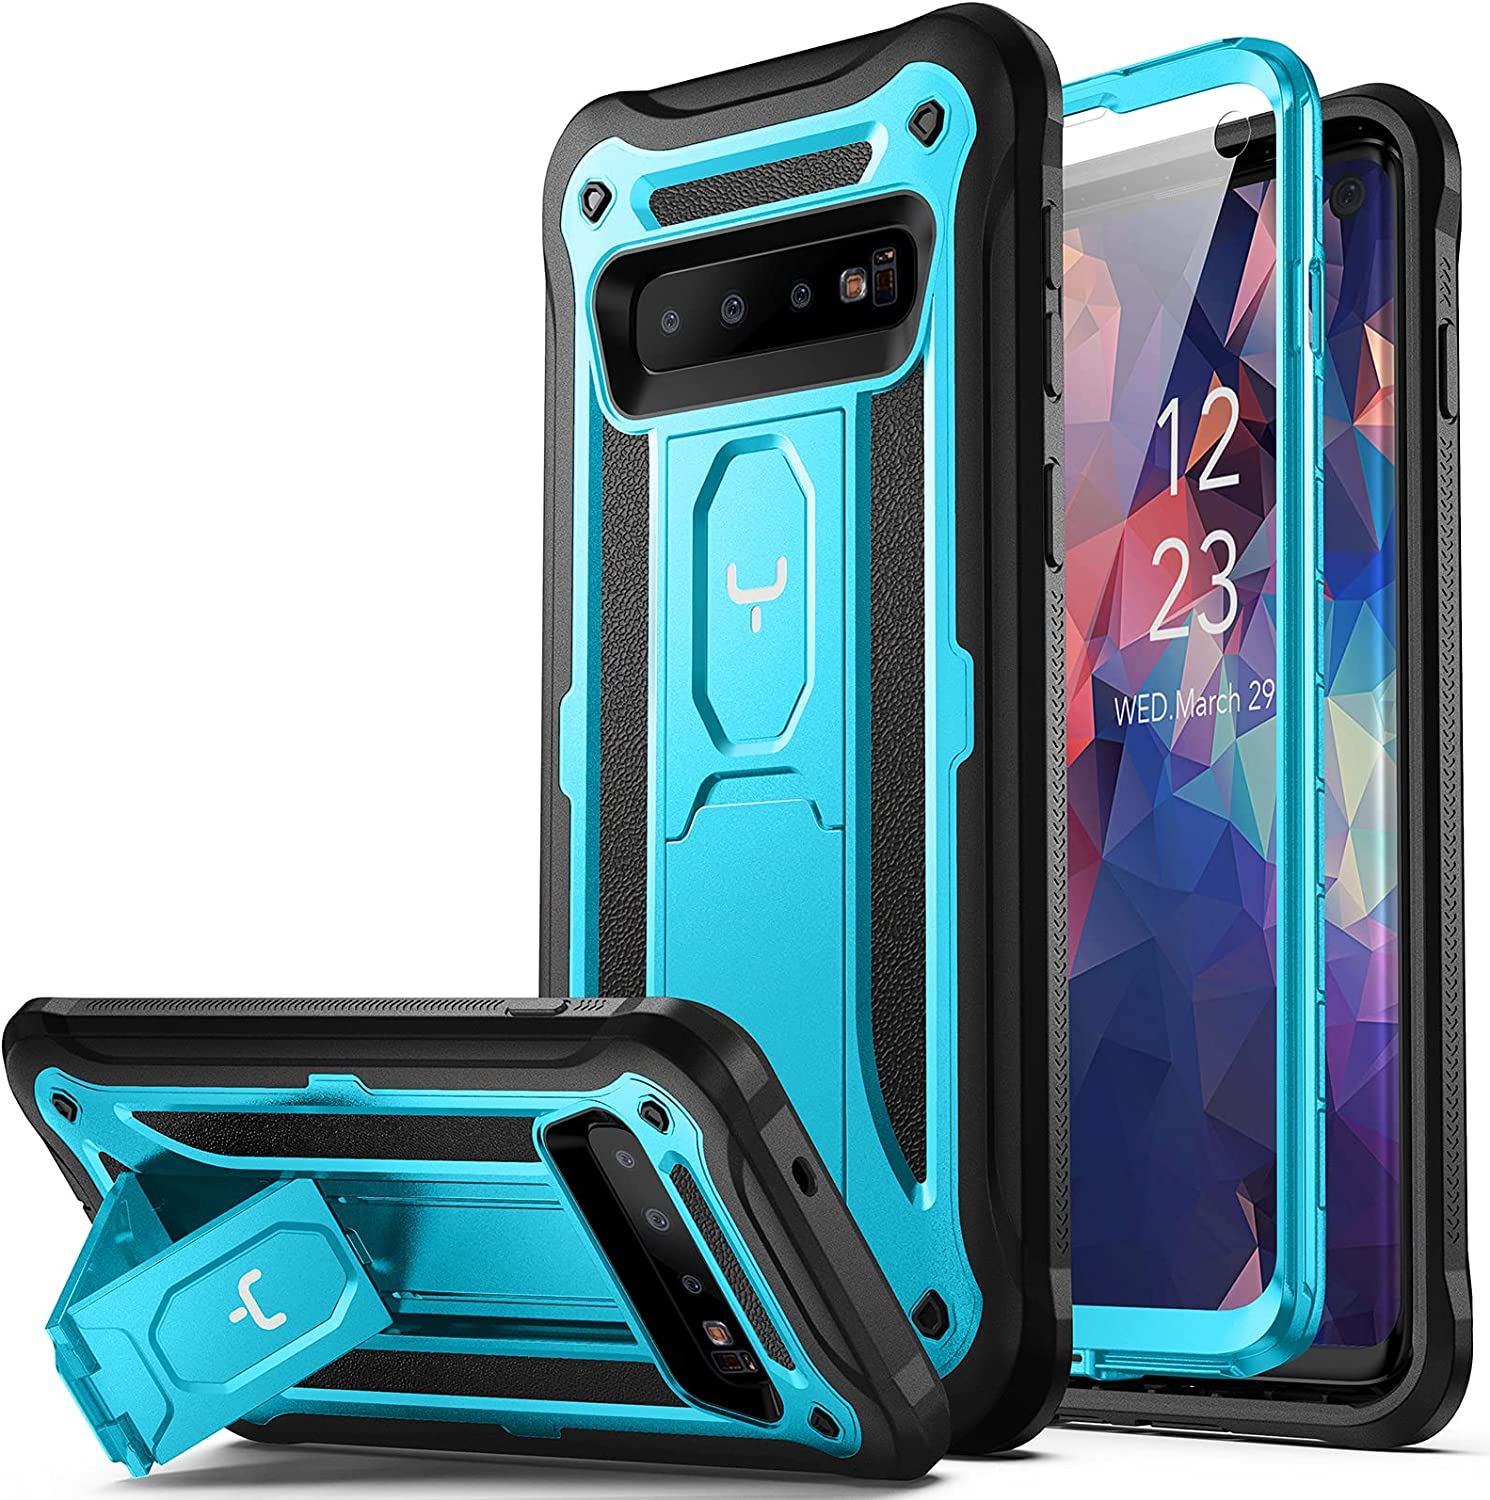 YOUMAKER Case for Galaxy S10, Kickstand Case with Built-in Screen Protector Heavy Duty Protection Shockproof Full Body Slim Fit Cover for Samsung Galaxy S10 6.1 inch - Blue